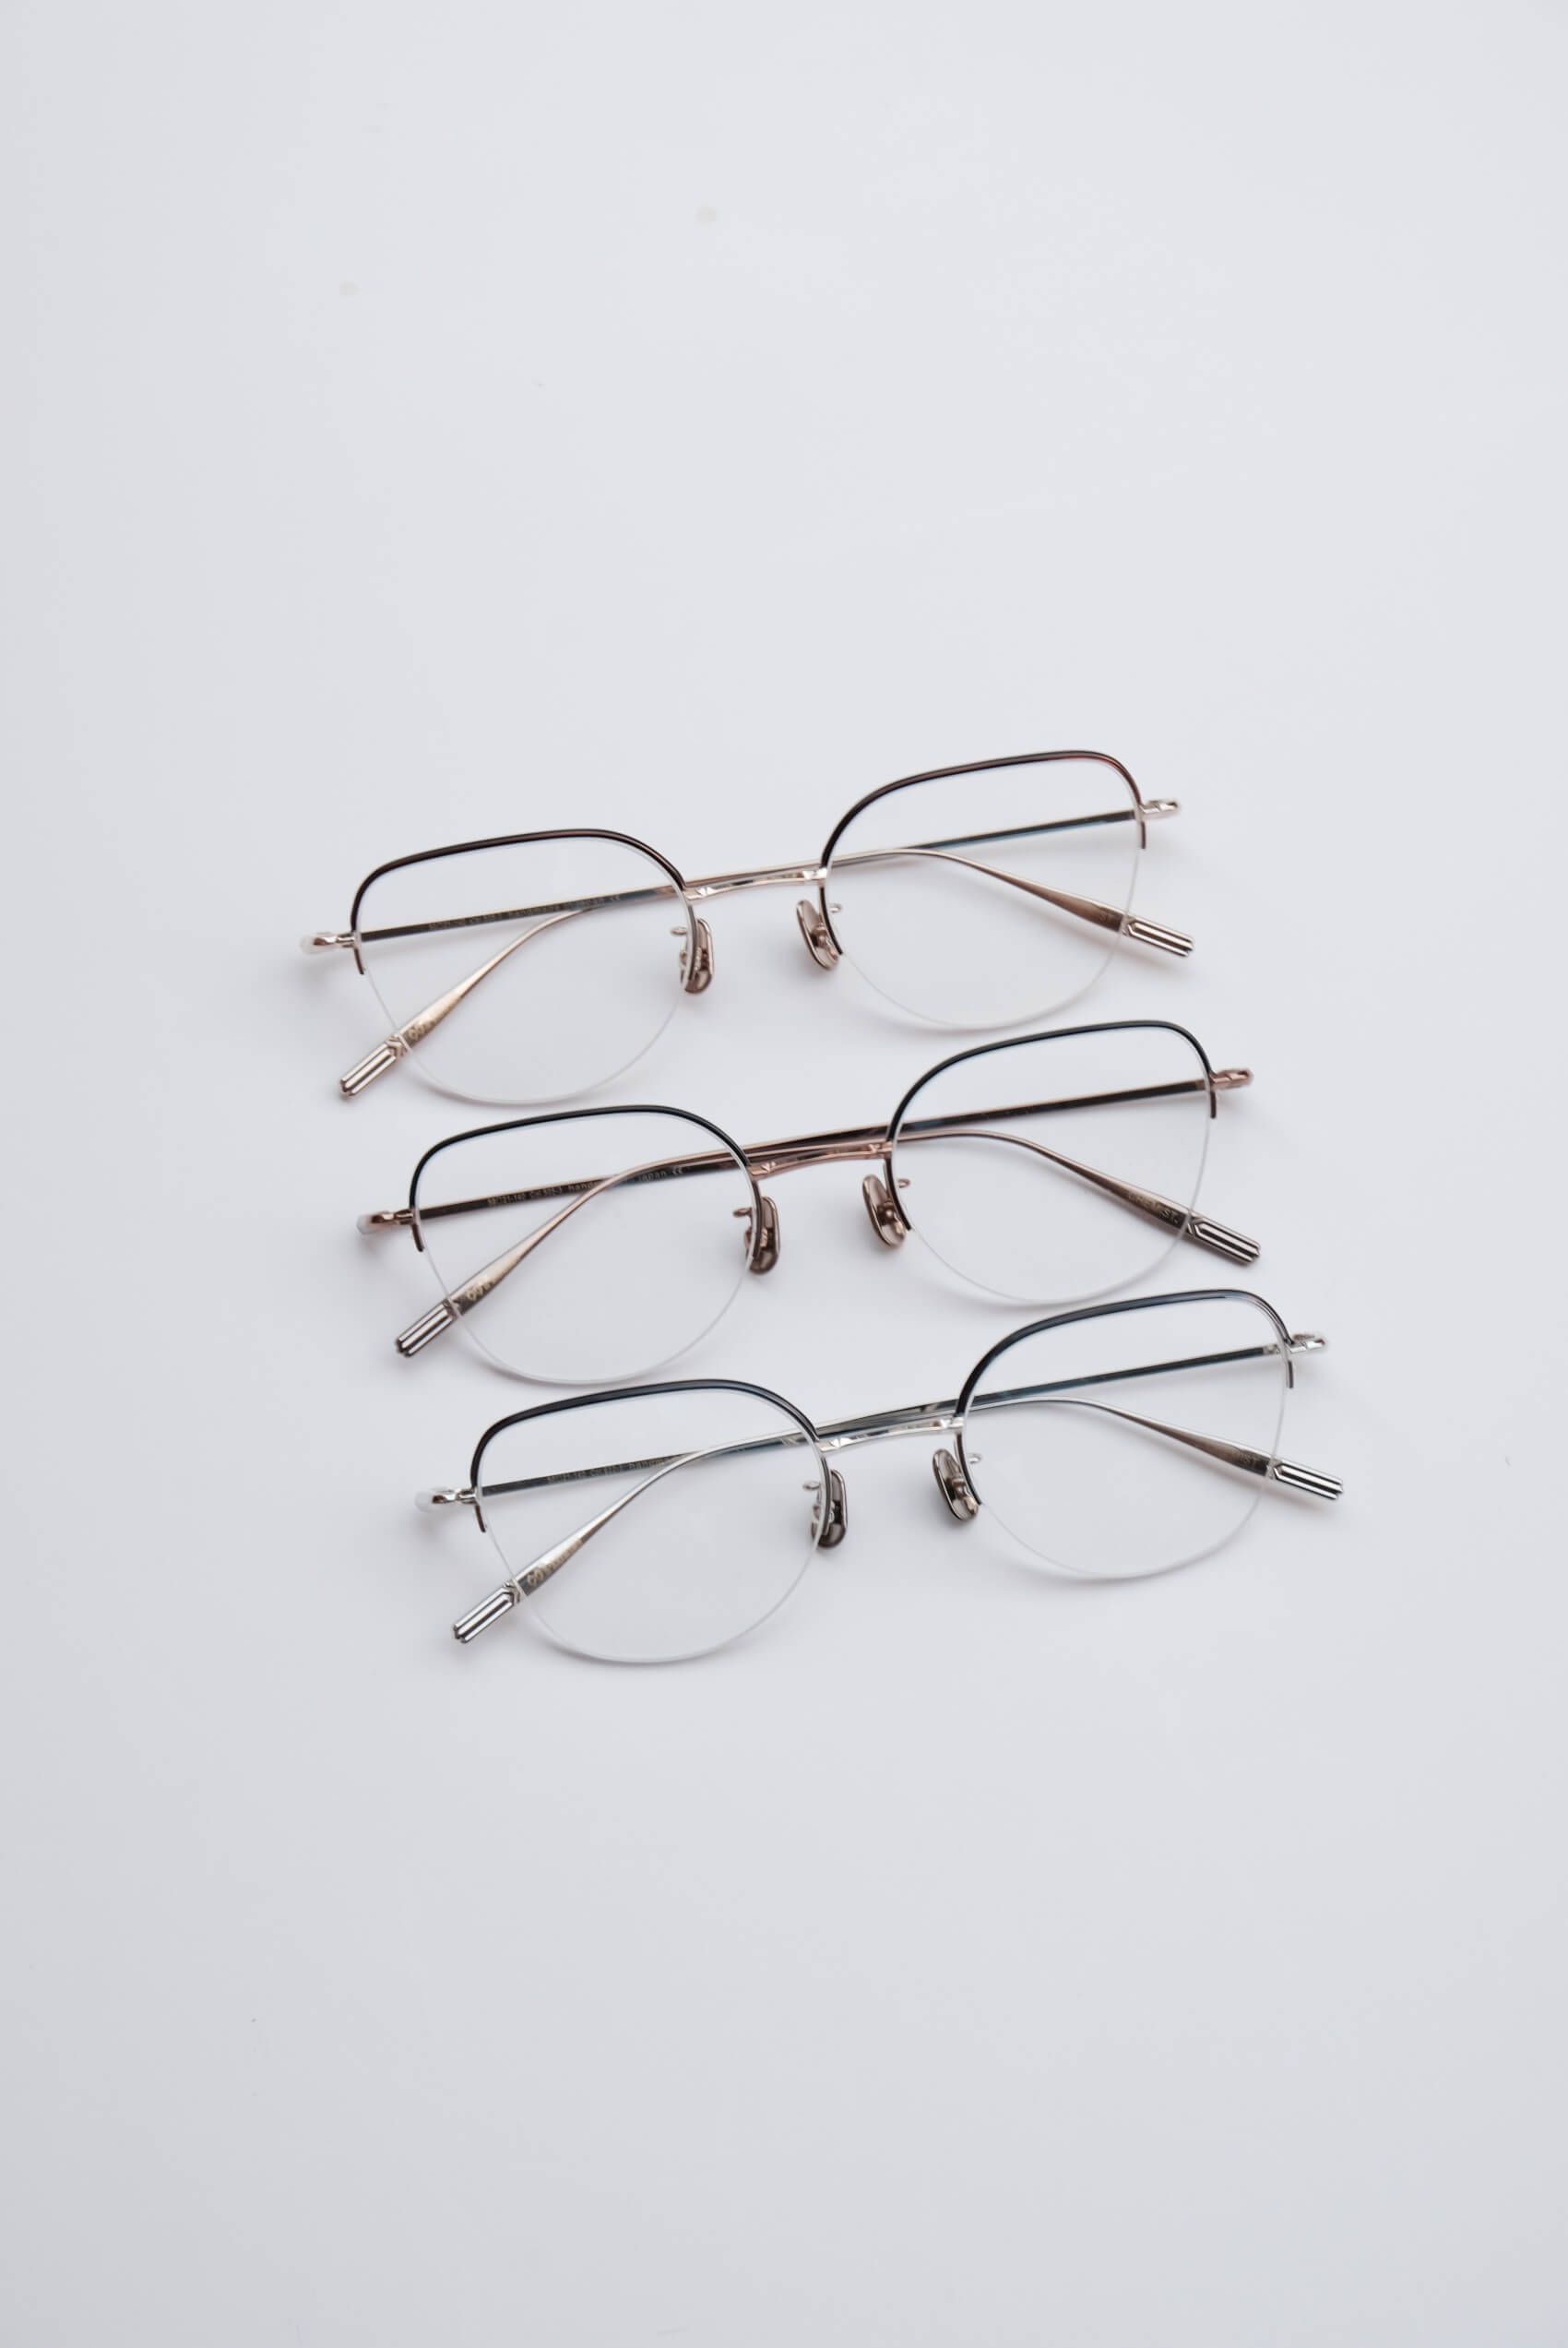 OG×OLIVERGOLDSMITH-No-gloss